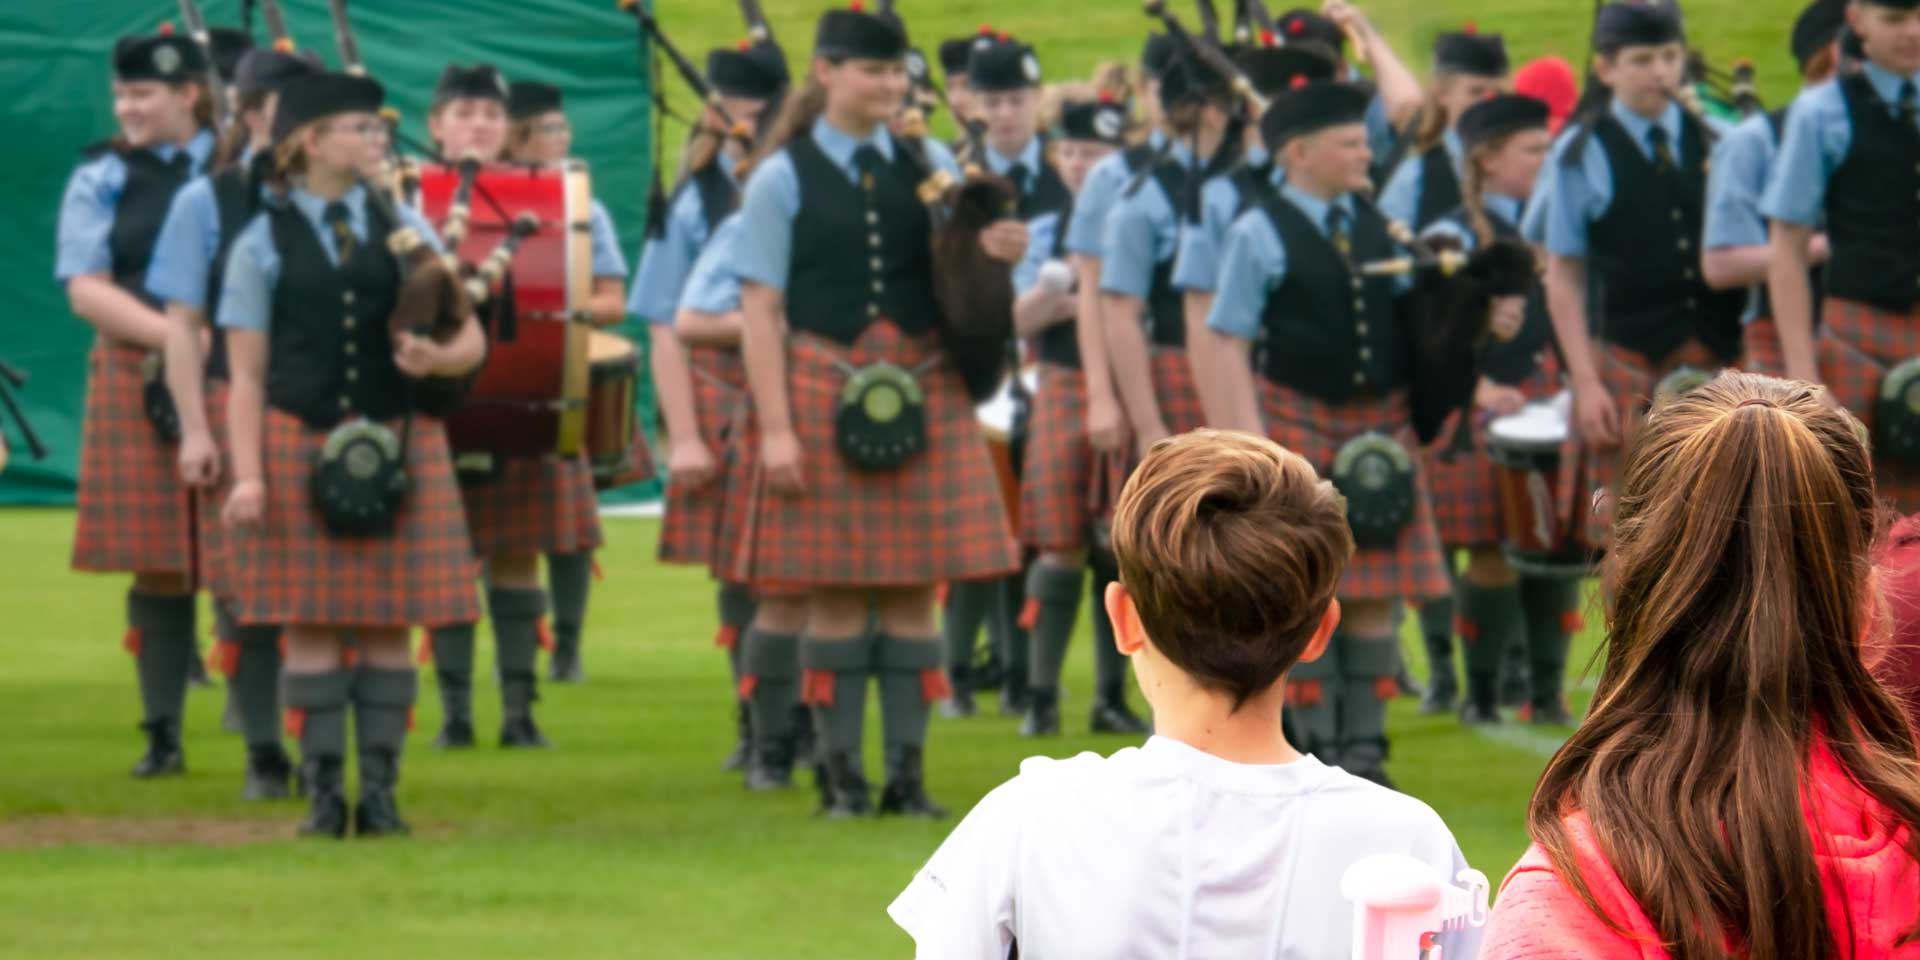 Oban High School Pipe Band entertain the crowds at the Oban Games